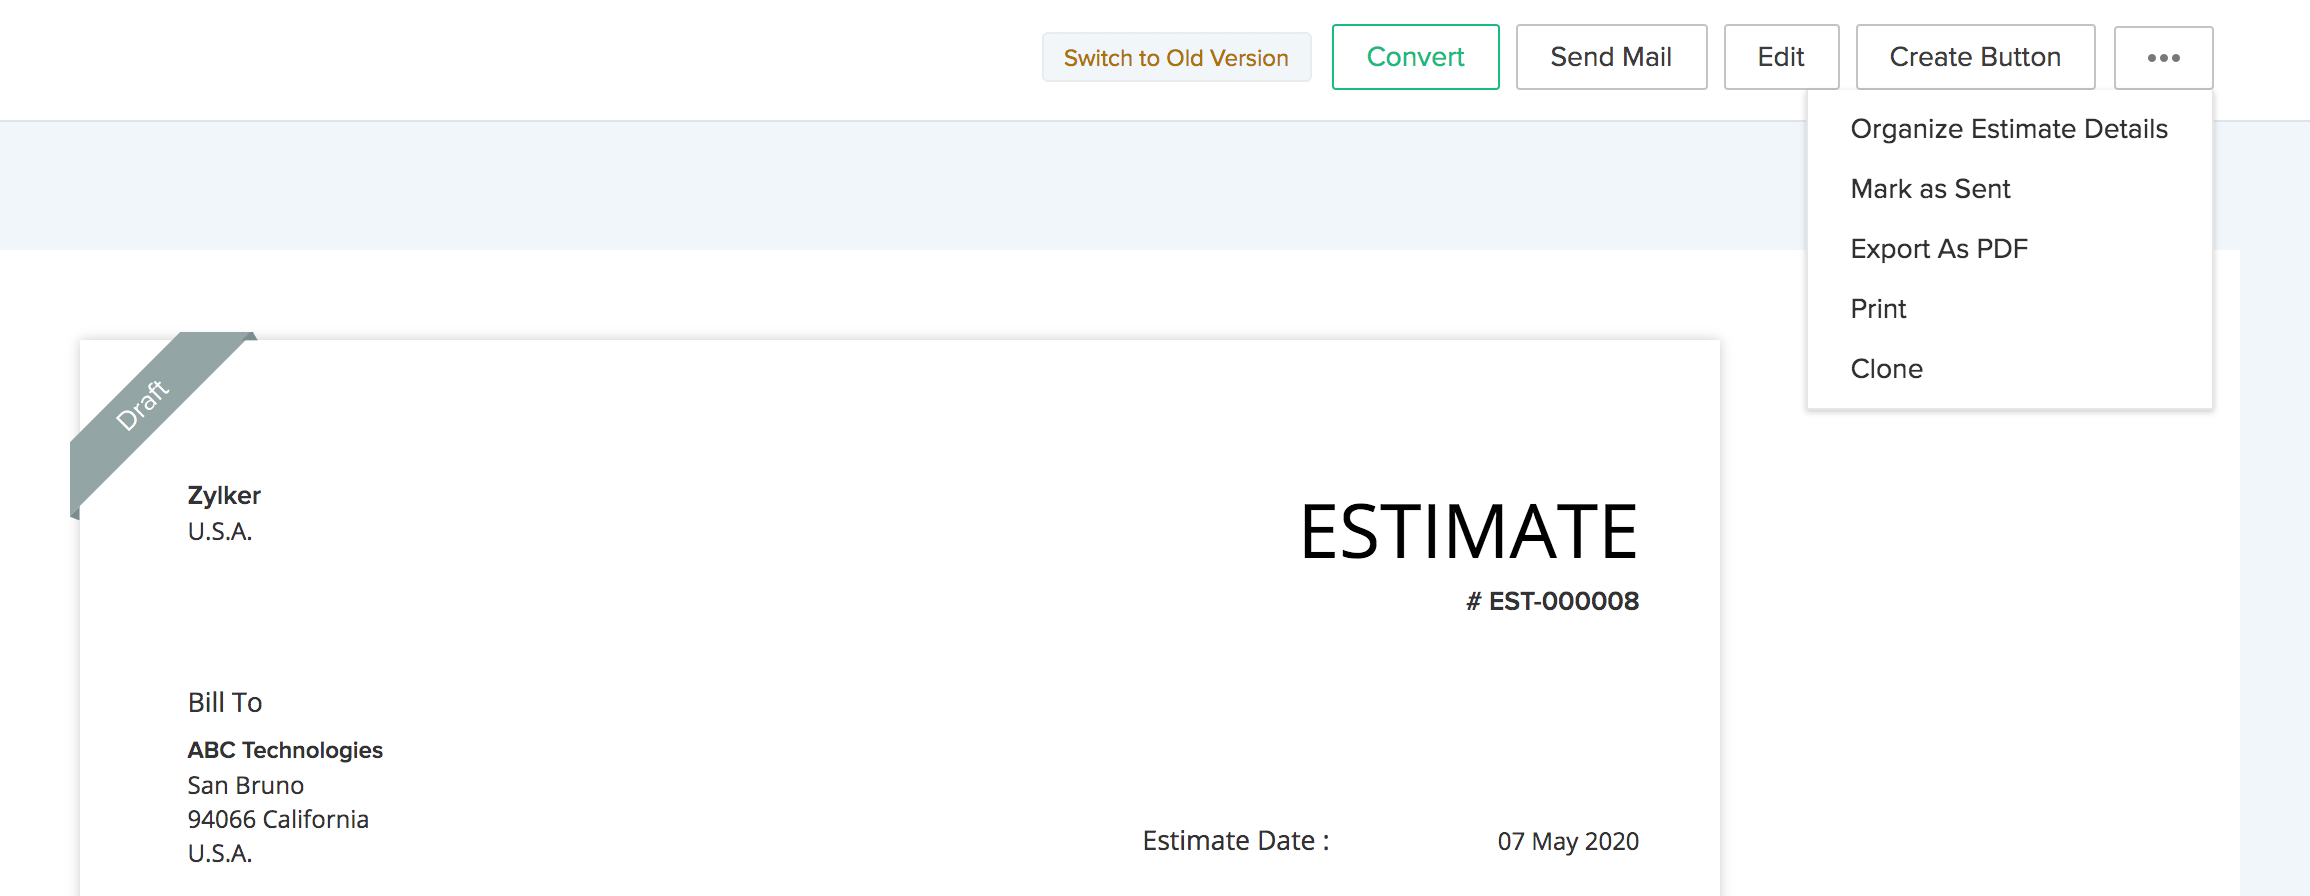 Estimate Options